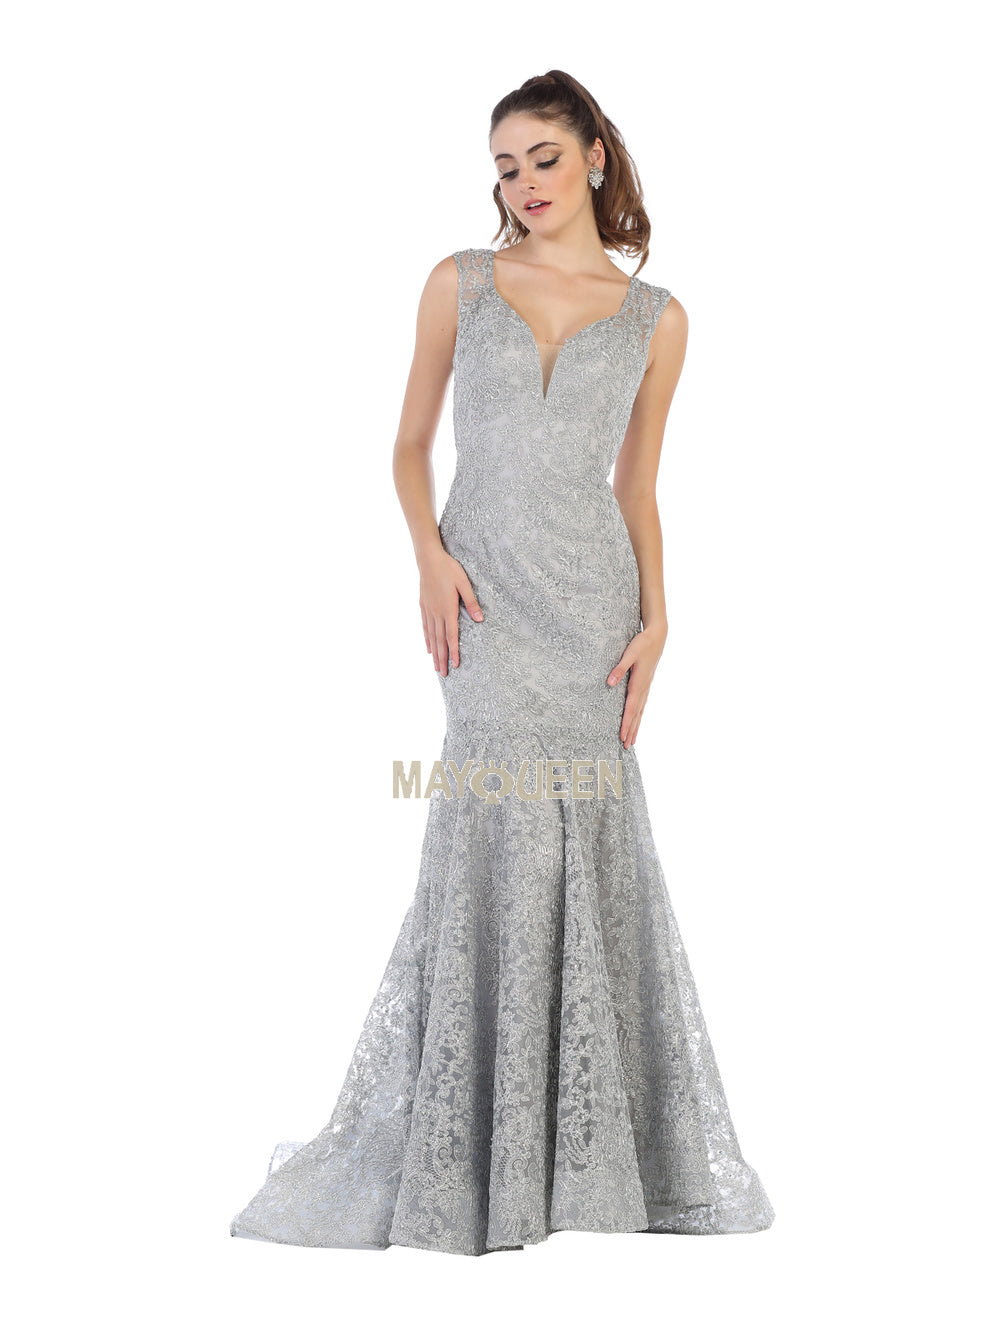 Mayqueen Size Chart E MQ 7635 - Embellished Plunging V-Neck Mermaid Dress - Diggz Prom